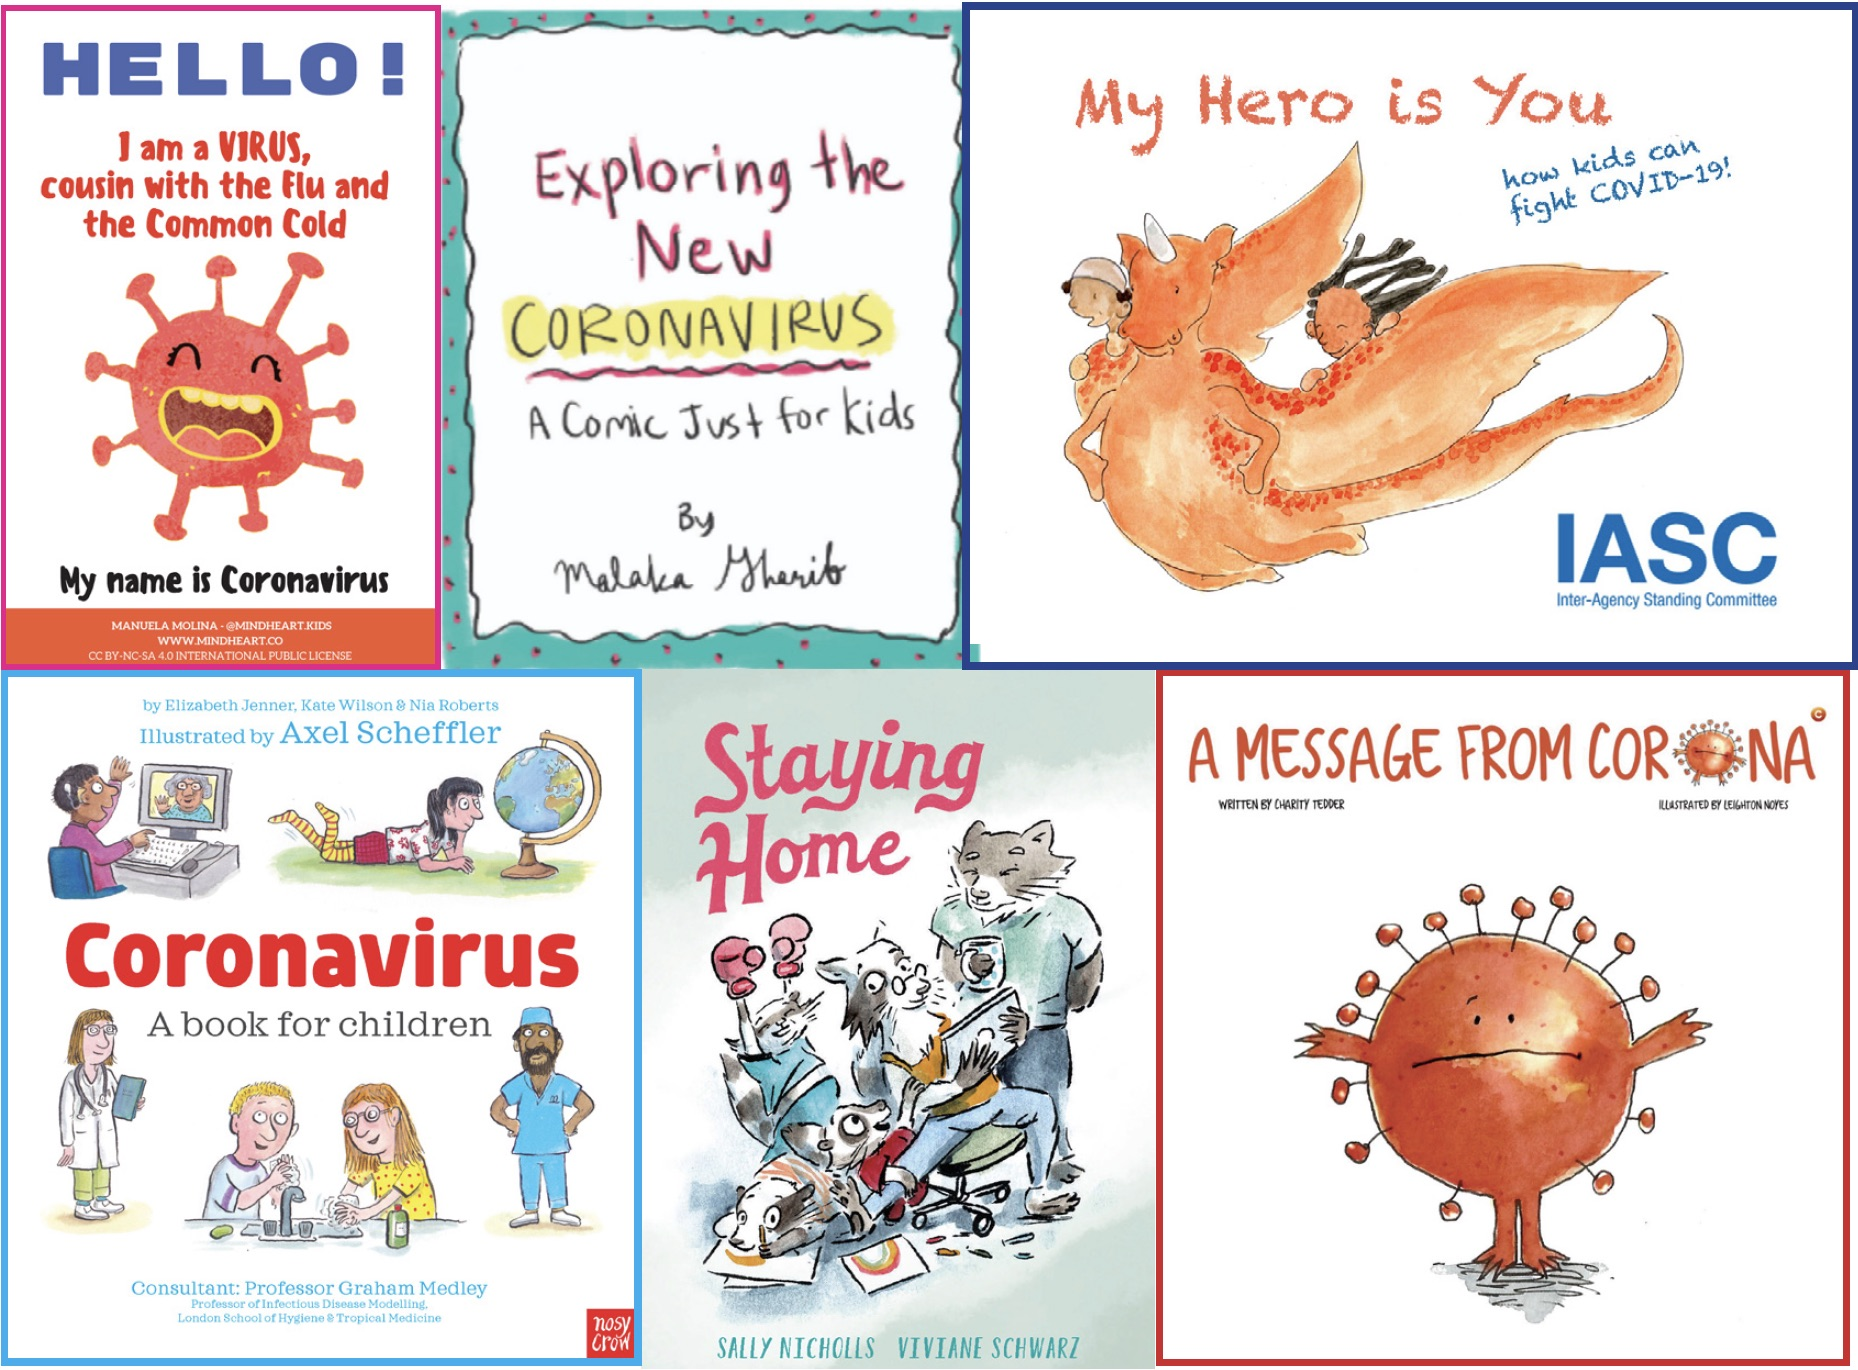 Coronavirus Books For Children Free Digital Books For Kids About Covid 19